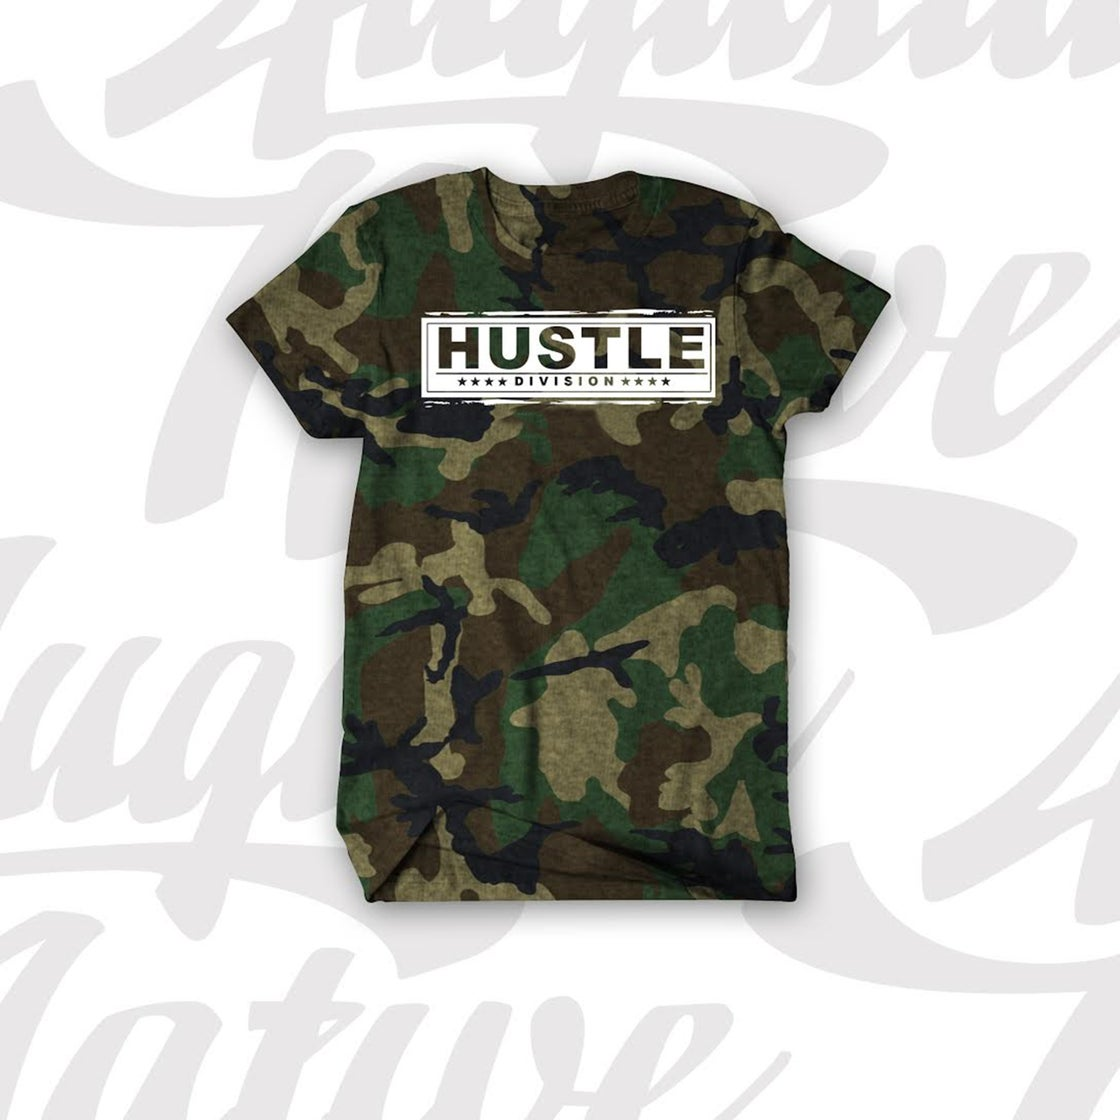 Image of HUSTLE DIVISION (2ND GENERATION) (Available in CAMO/WHT, BLK/WHT, BLK/GOLD, RED/WHT/ WHT/GOLD)